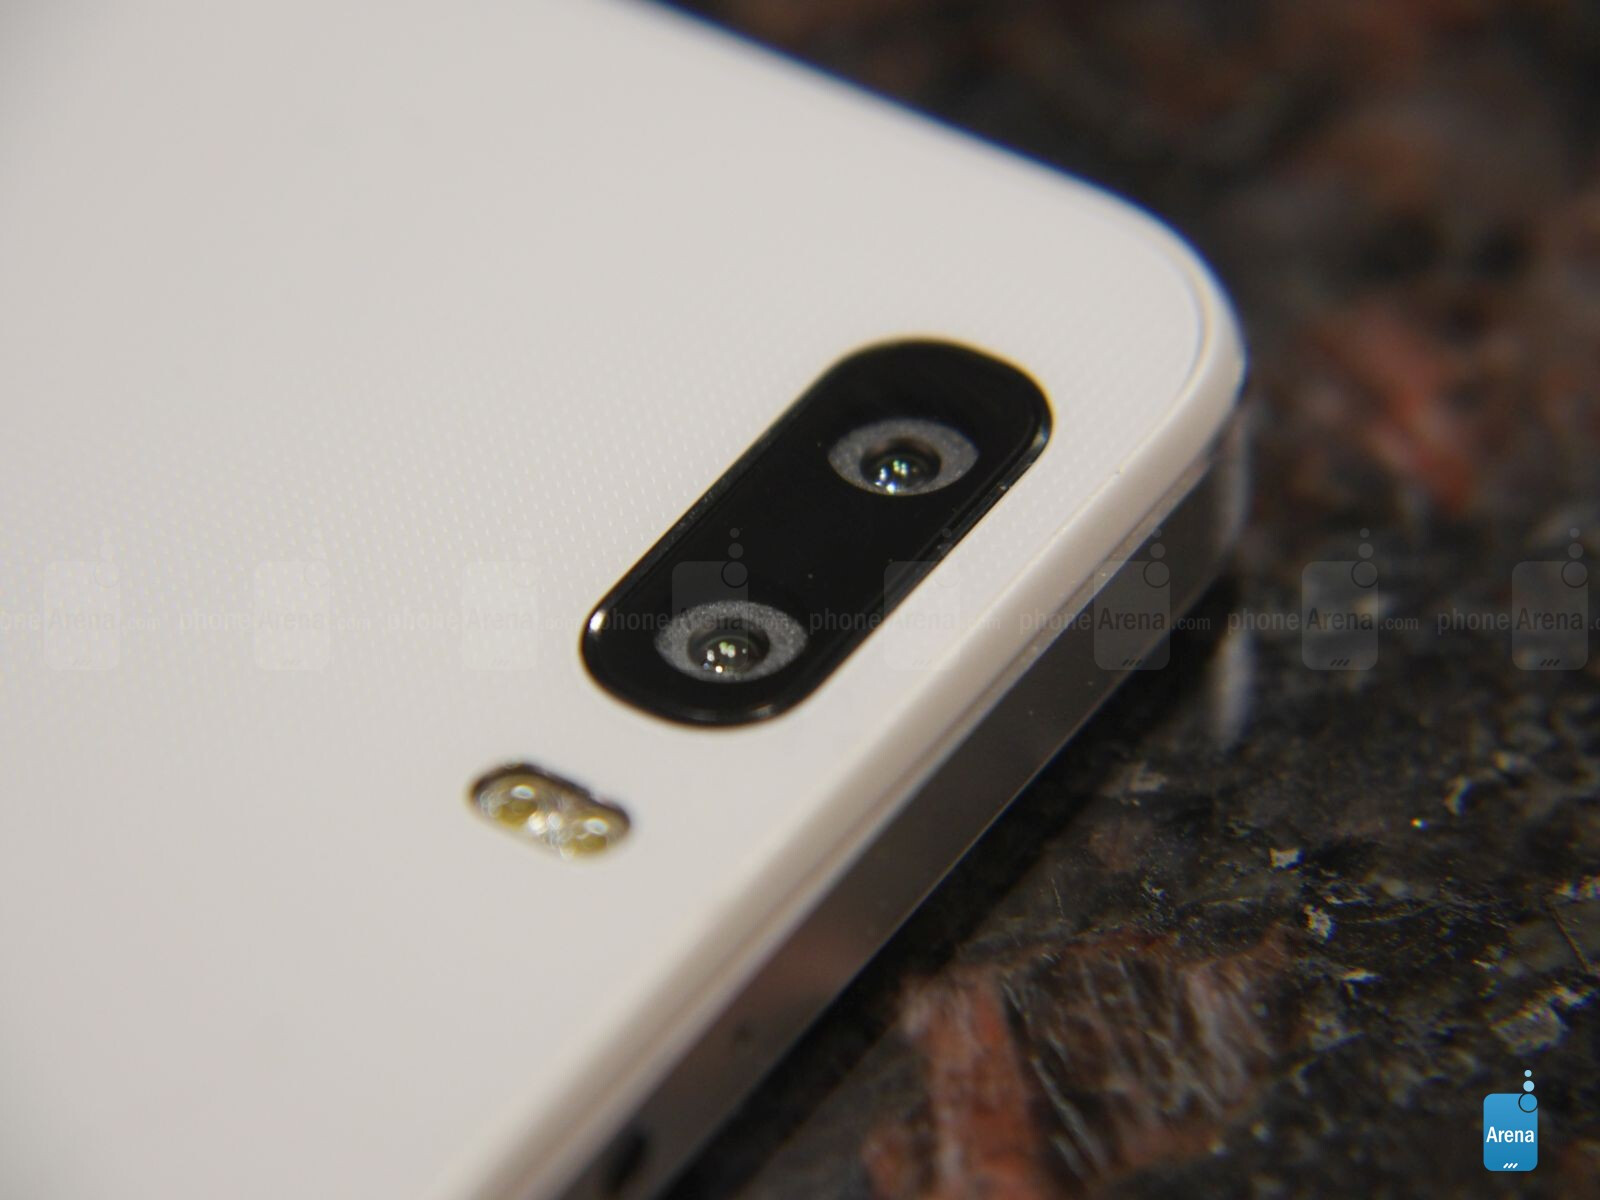 The battle of the bokeh cameras: Huawei Honor 6 Plus versus HTC One